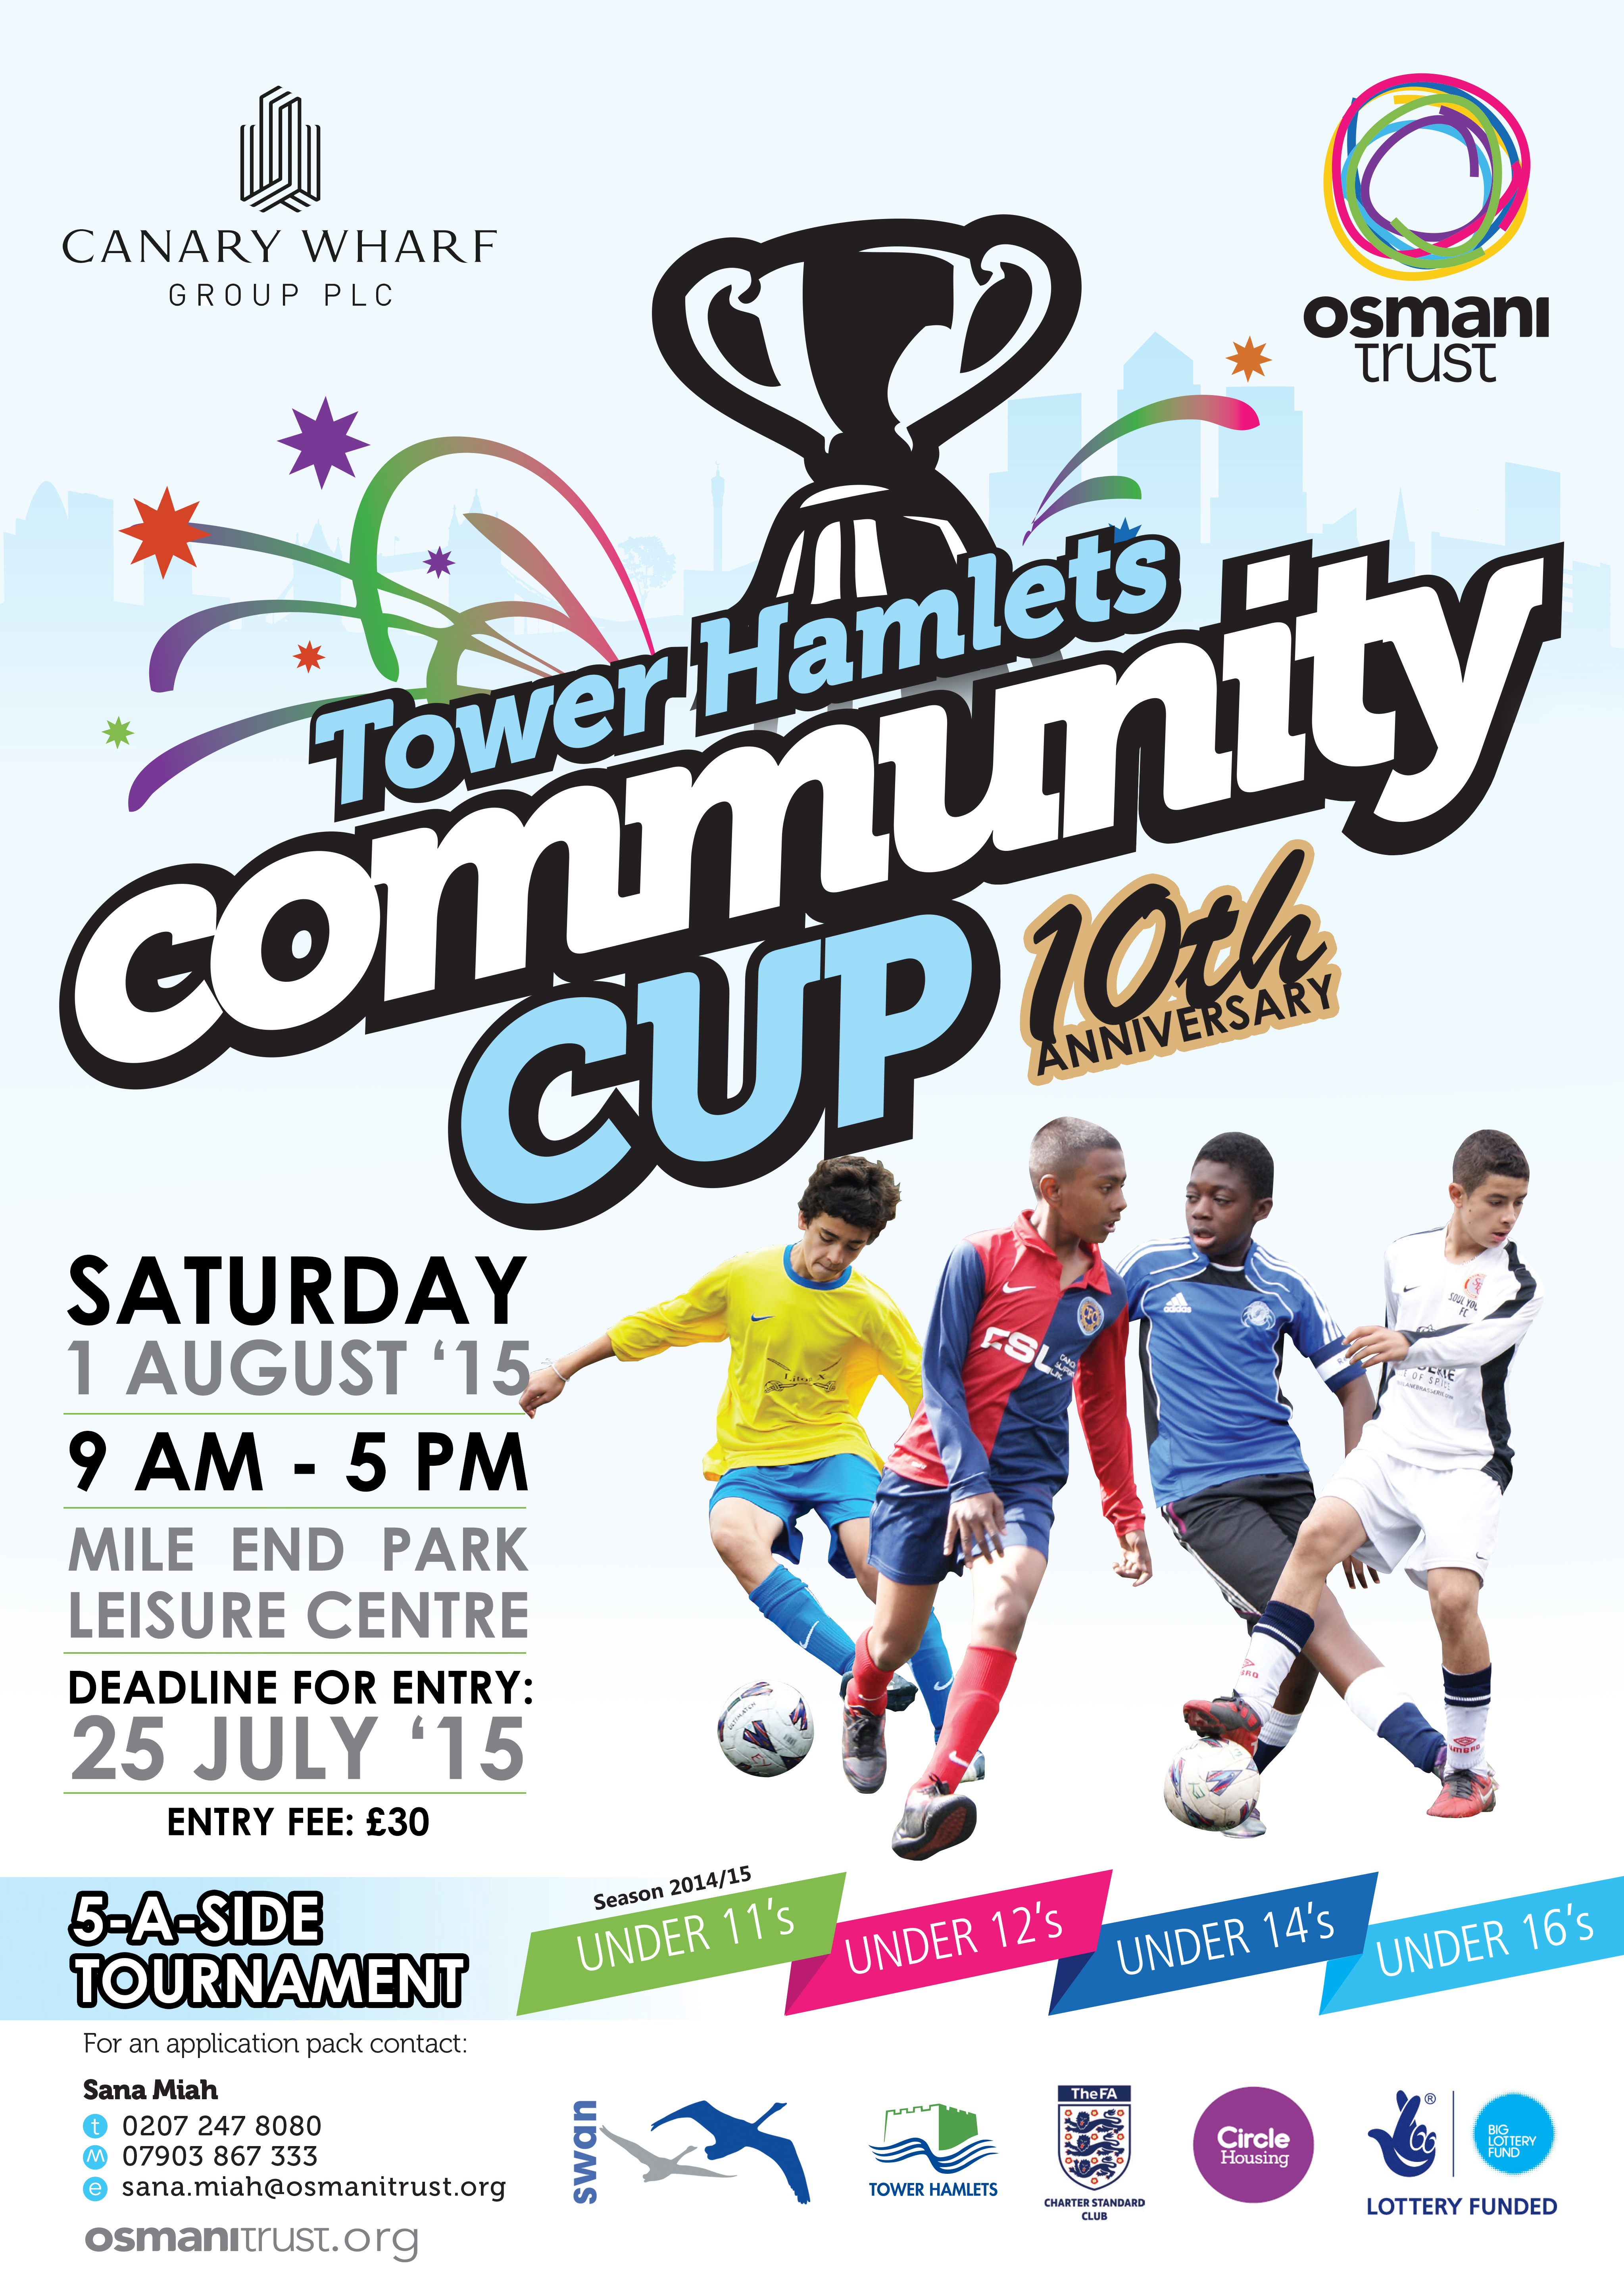 Tower Hamlets Community Cup